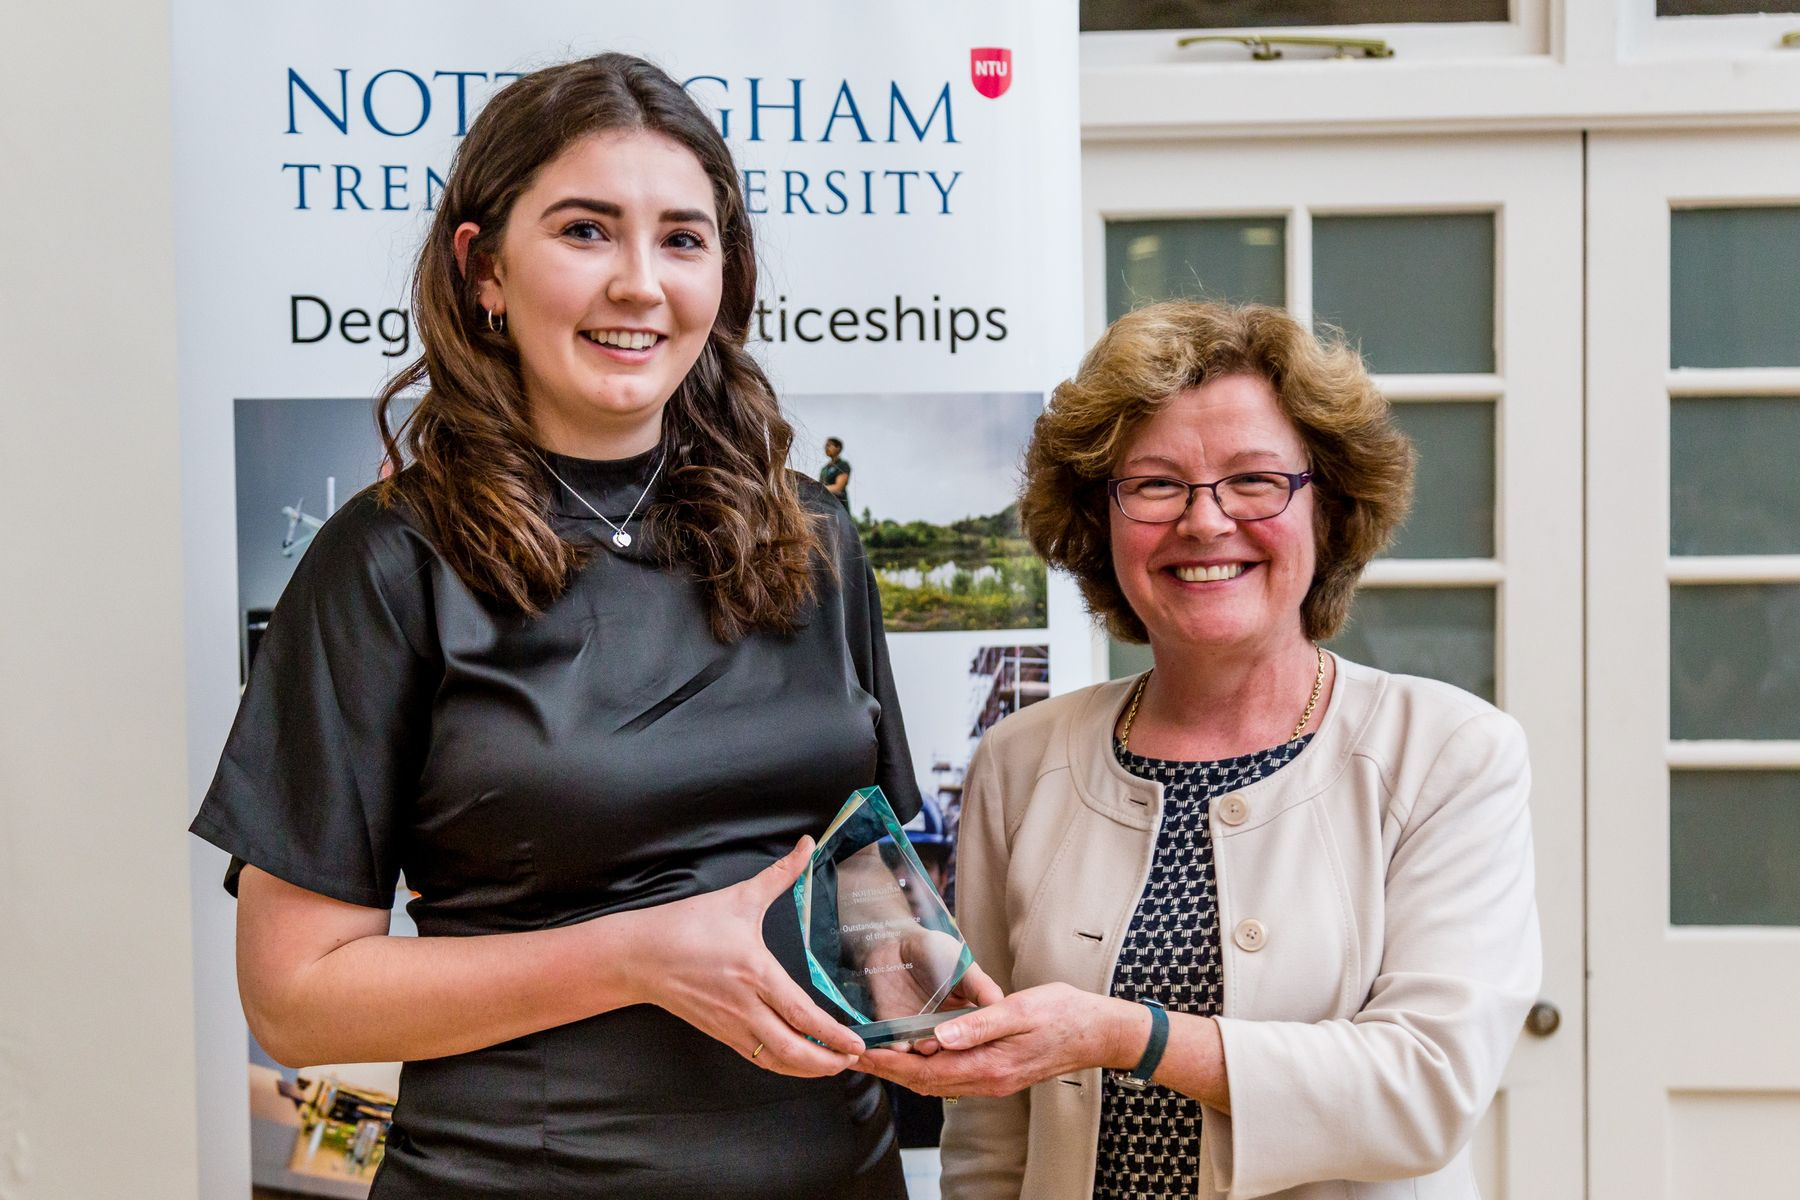 Apprentices collection award for outstanding apprentice of the year within public services